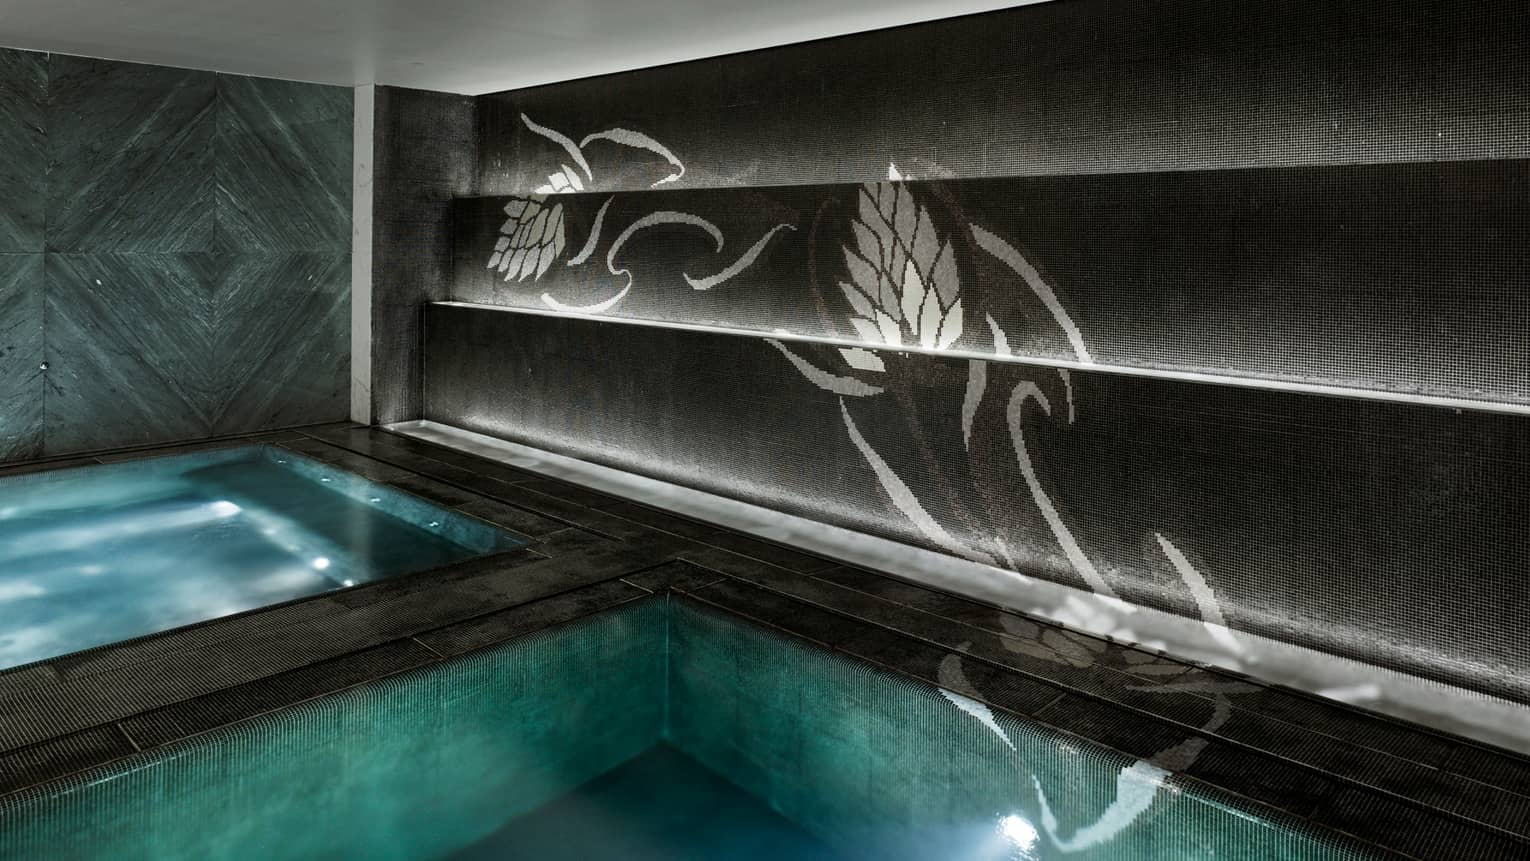 Spa hot tub with lights beside swimming pool under dark-paneled wall